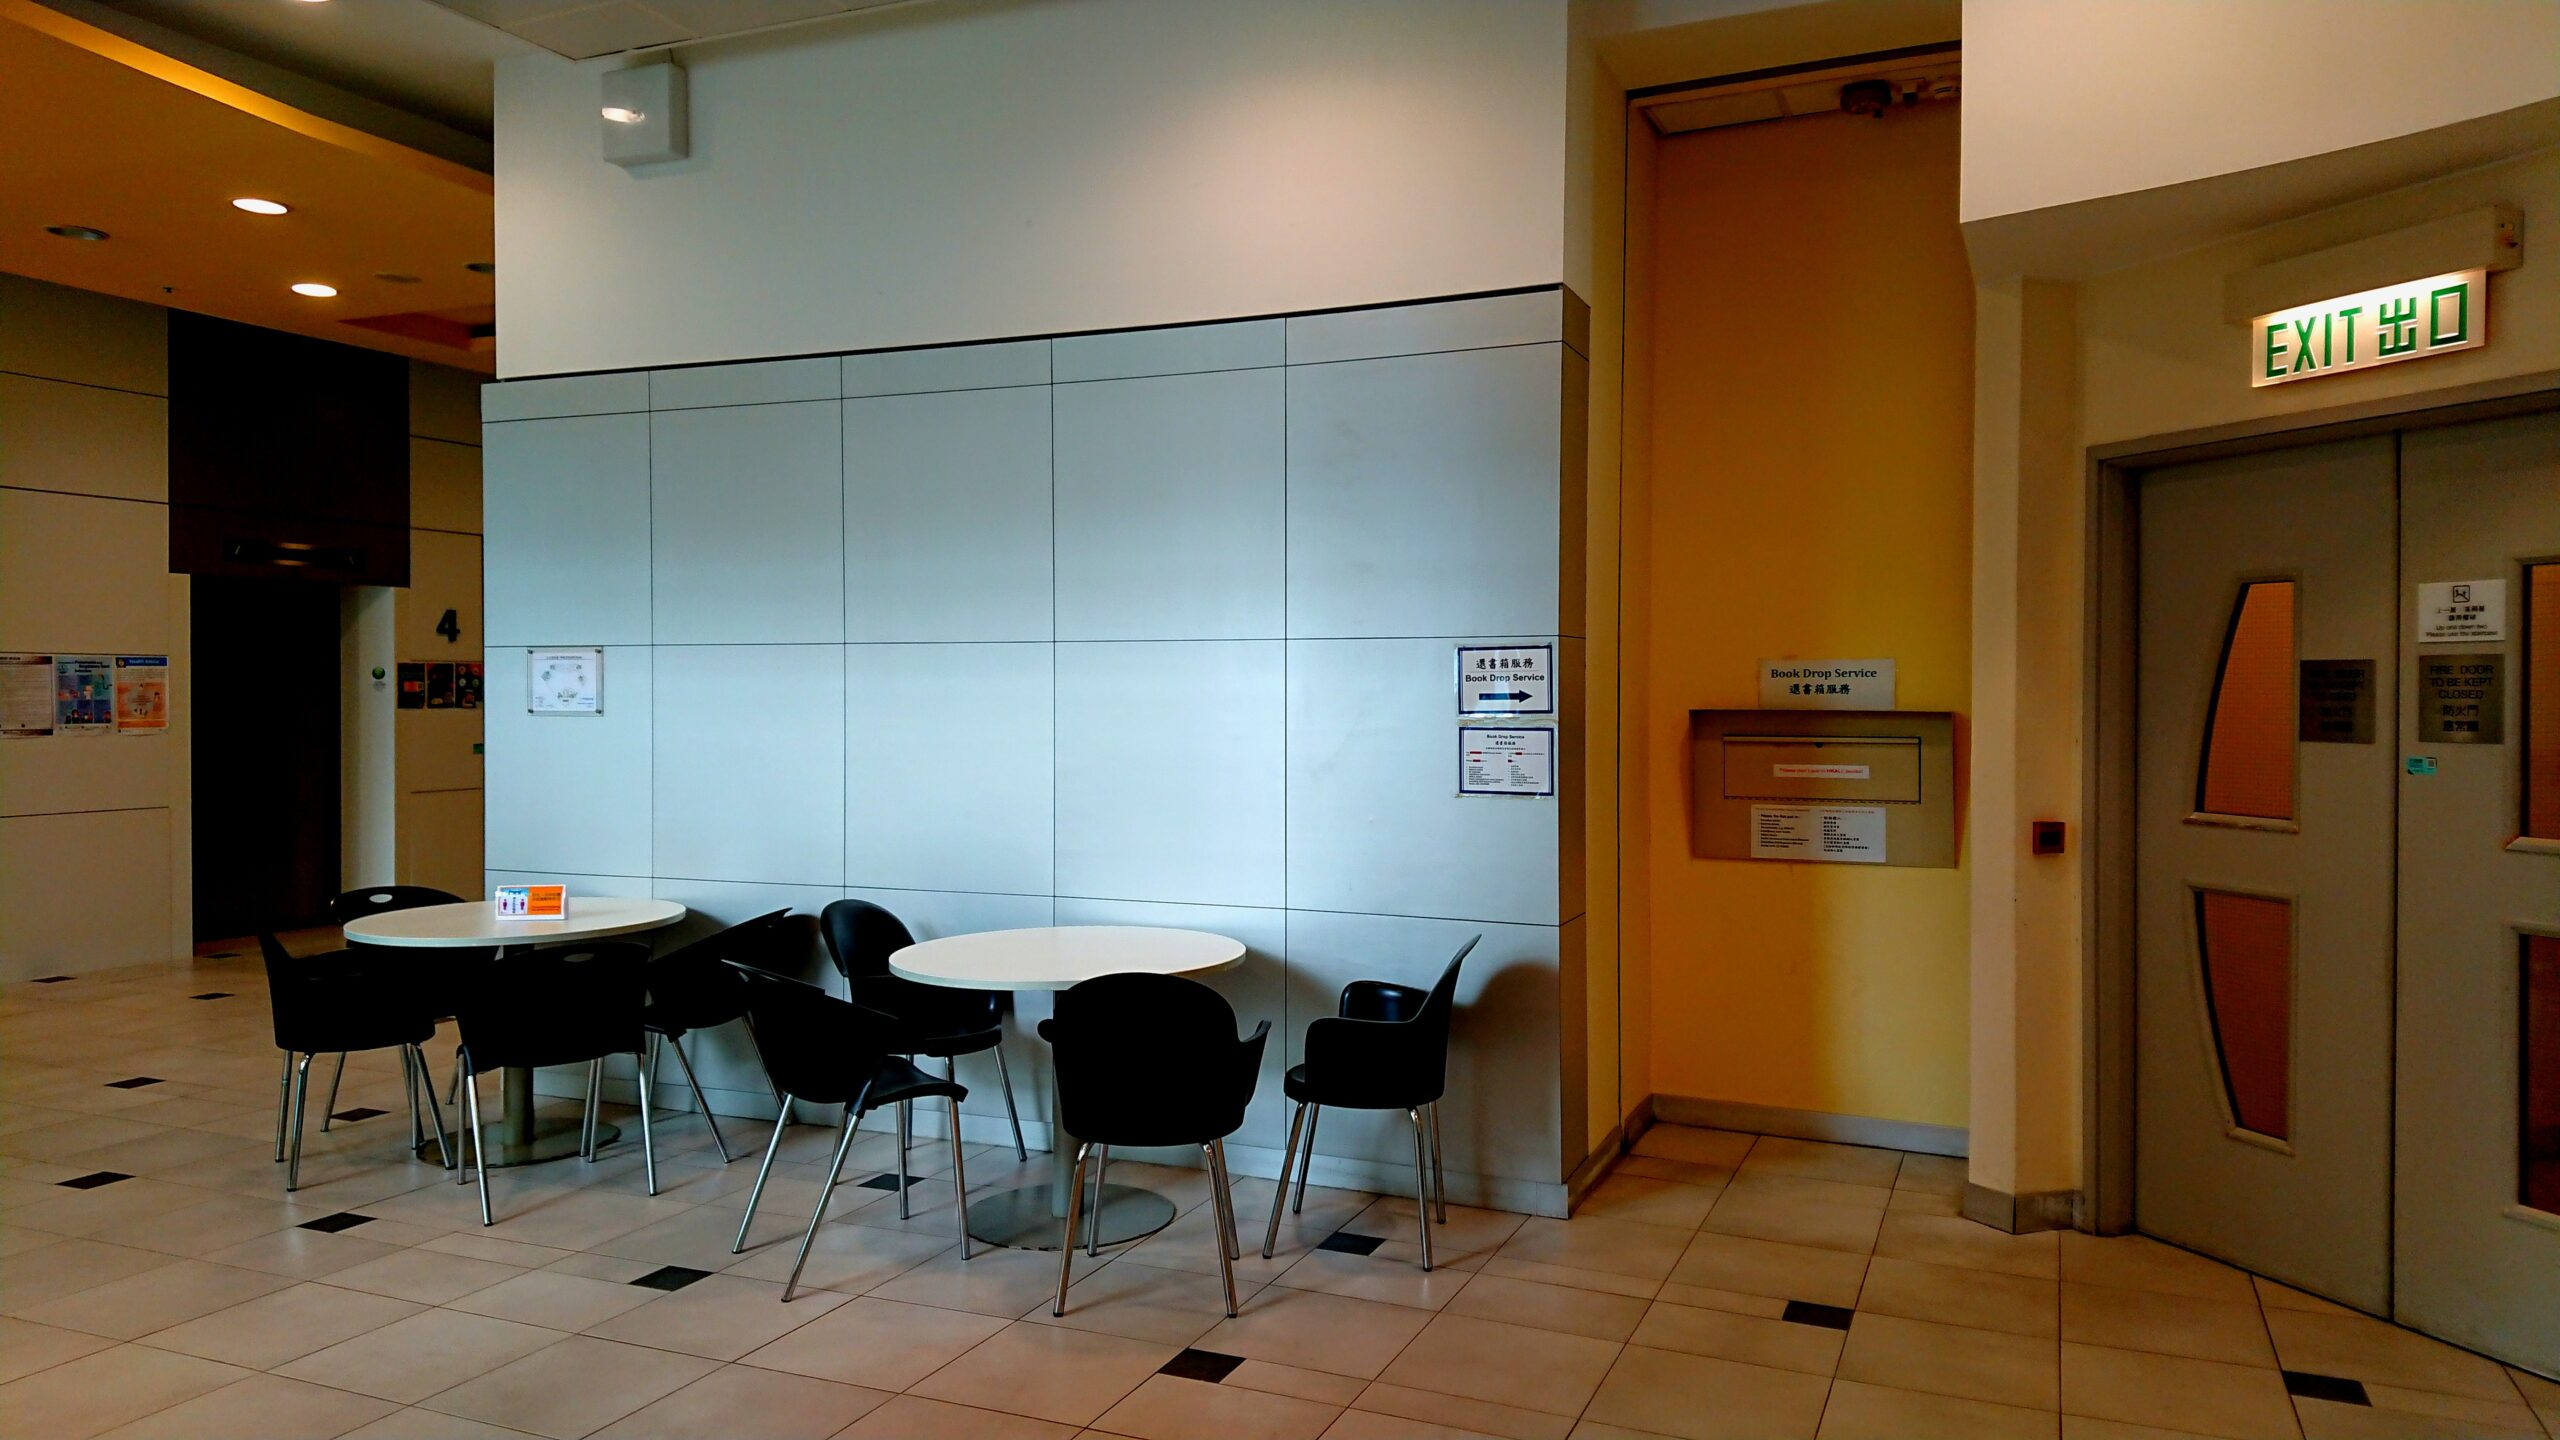 Picture of Book drop located on 4/F of the CIE Building